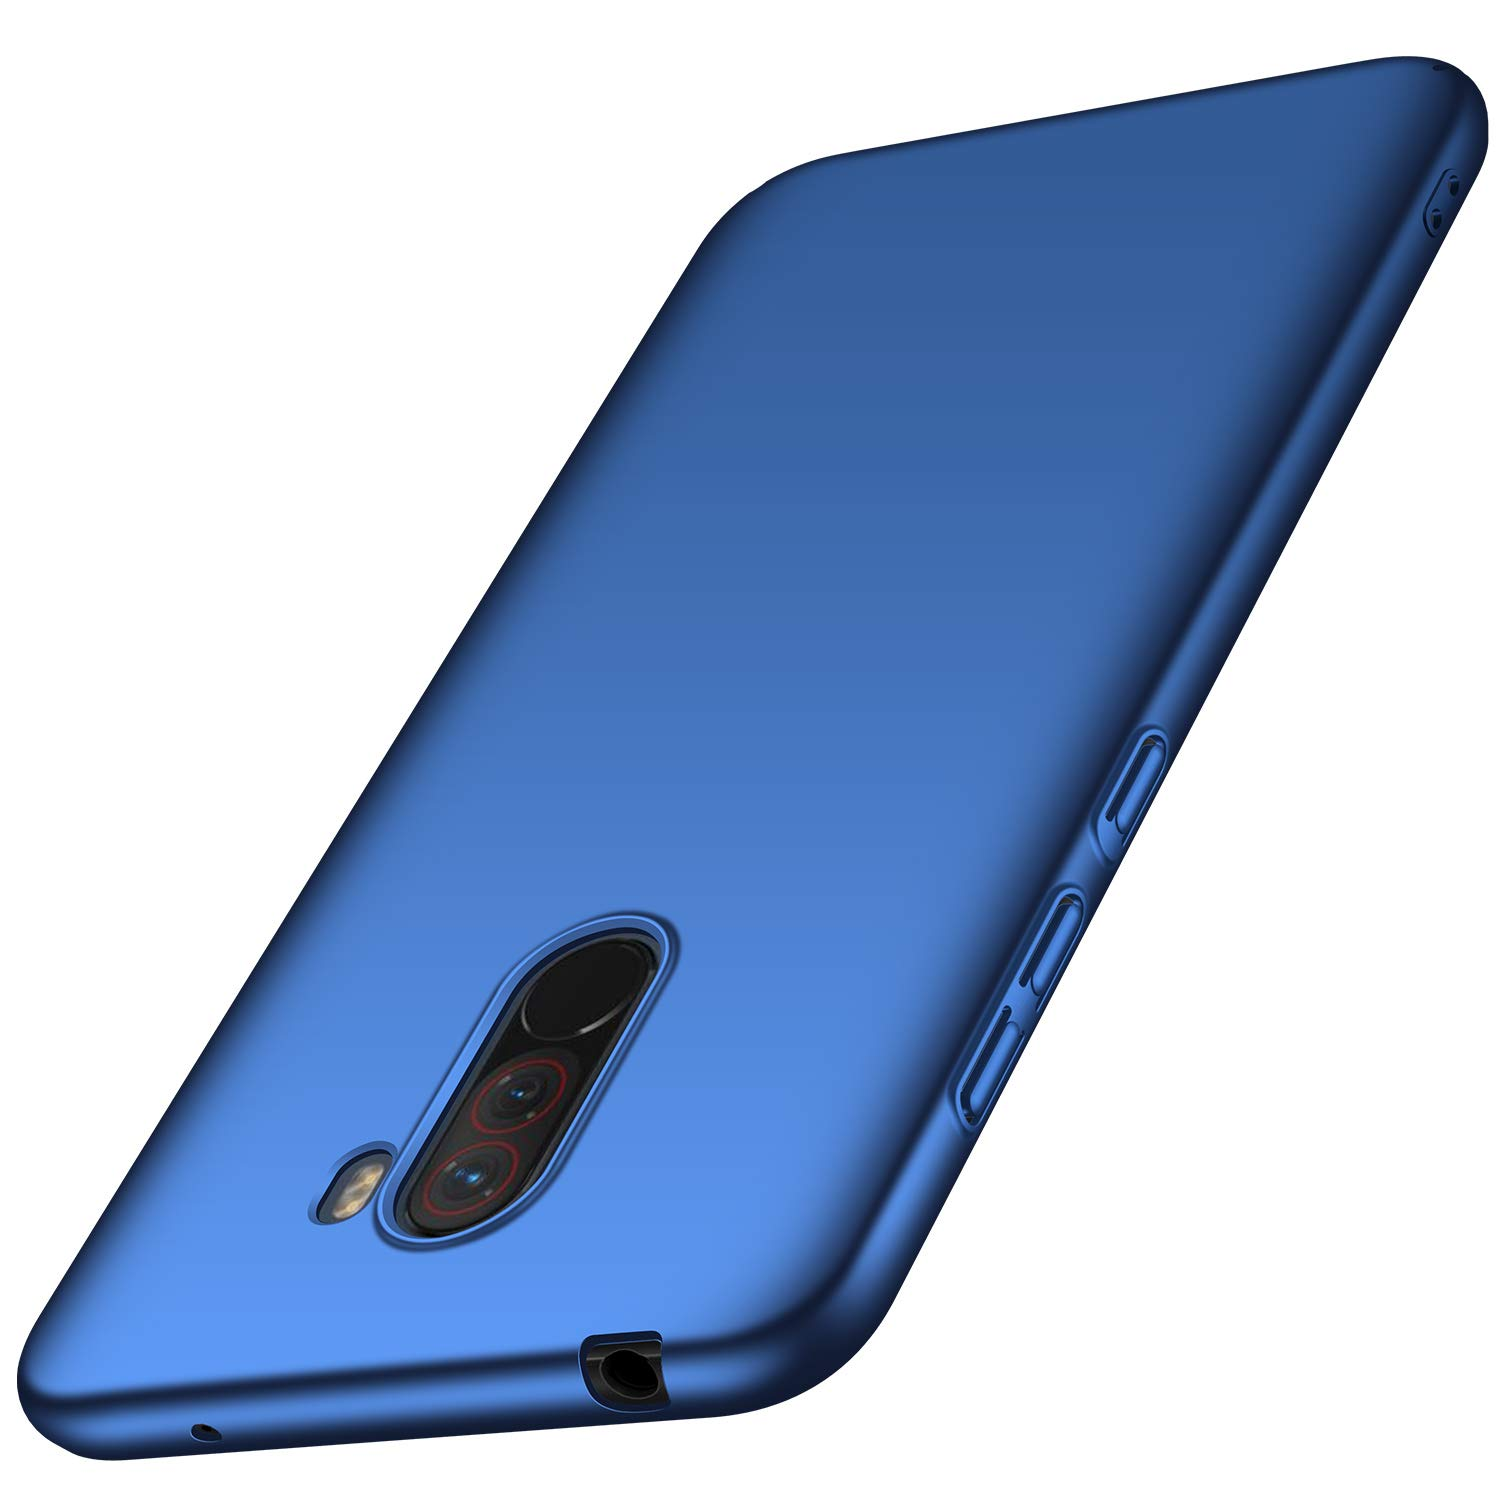 Anccer Xiaomi Pocophone F1 Case Ultra Thin Anti Stain Tempered Glass Full Drop Premium Material Slim Protection Cover For